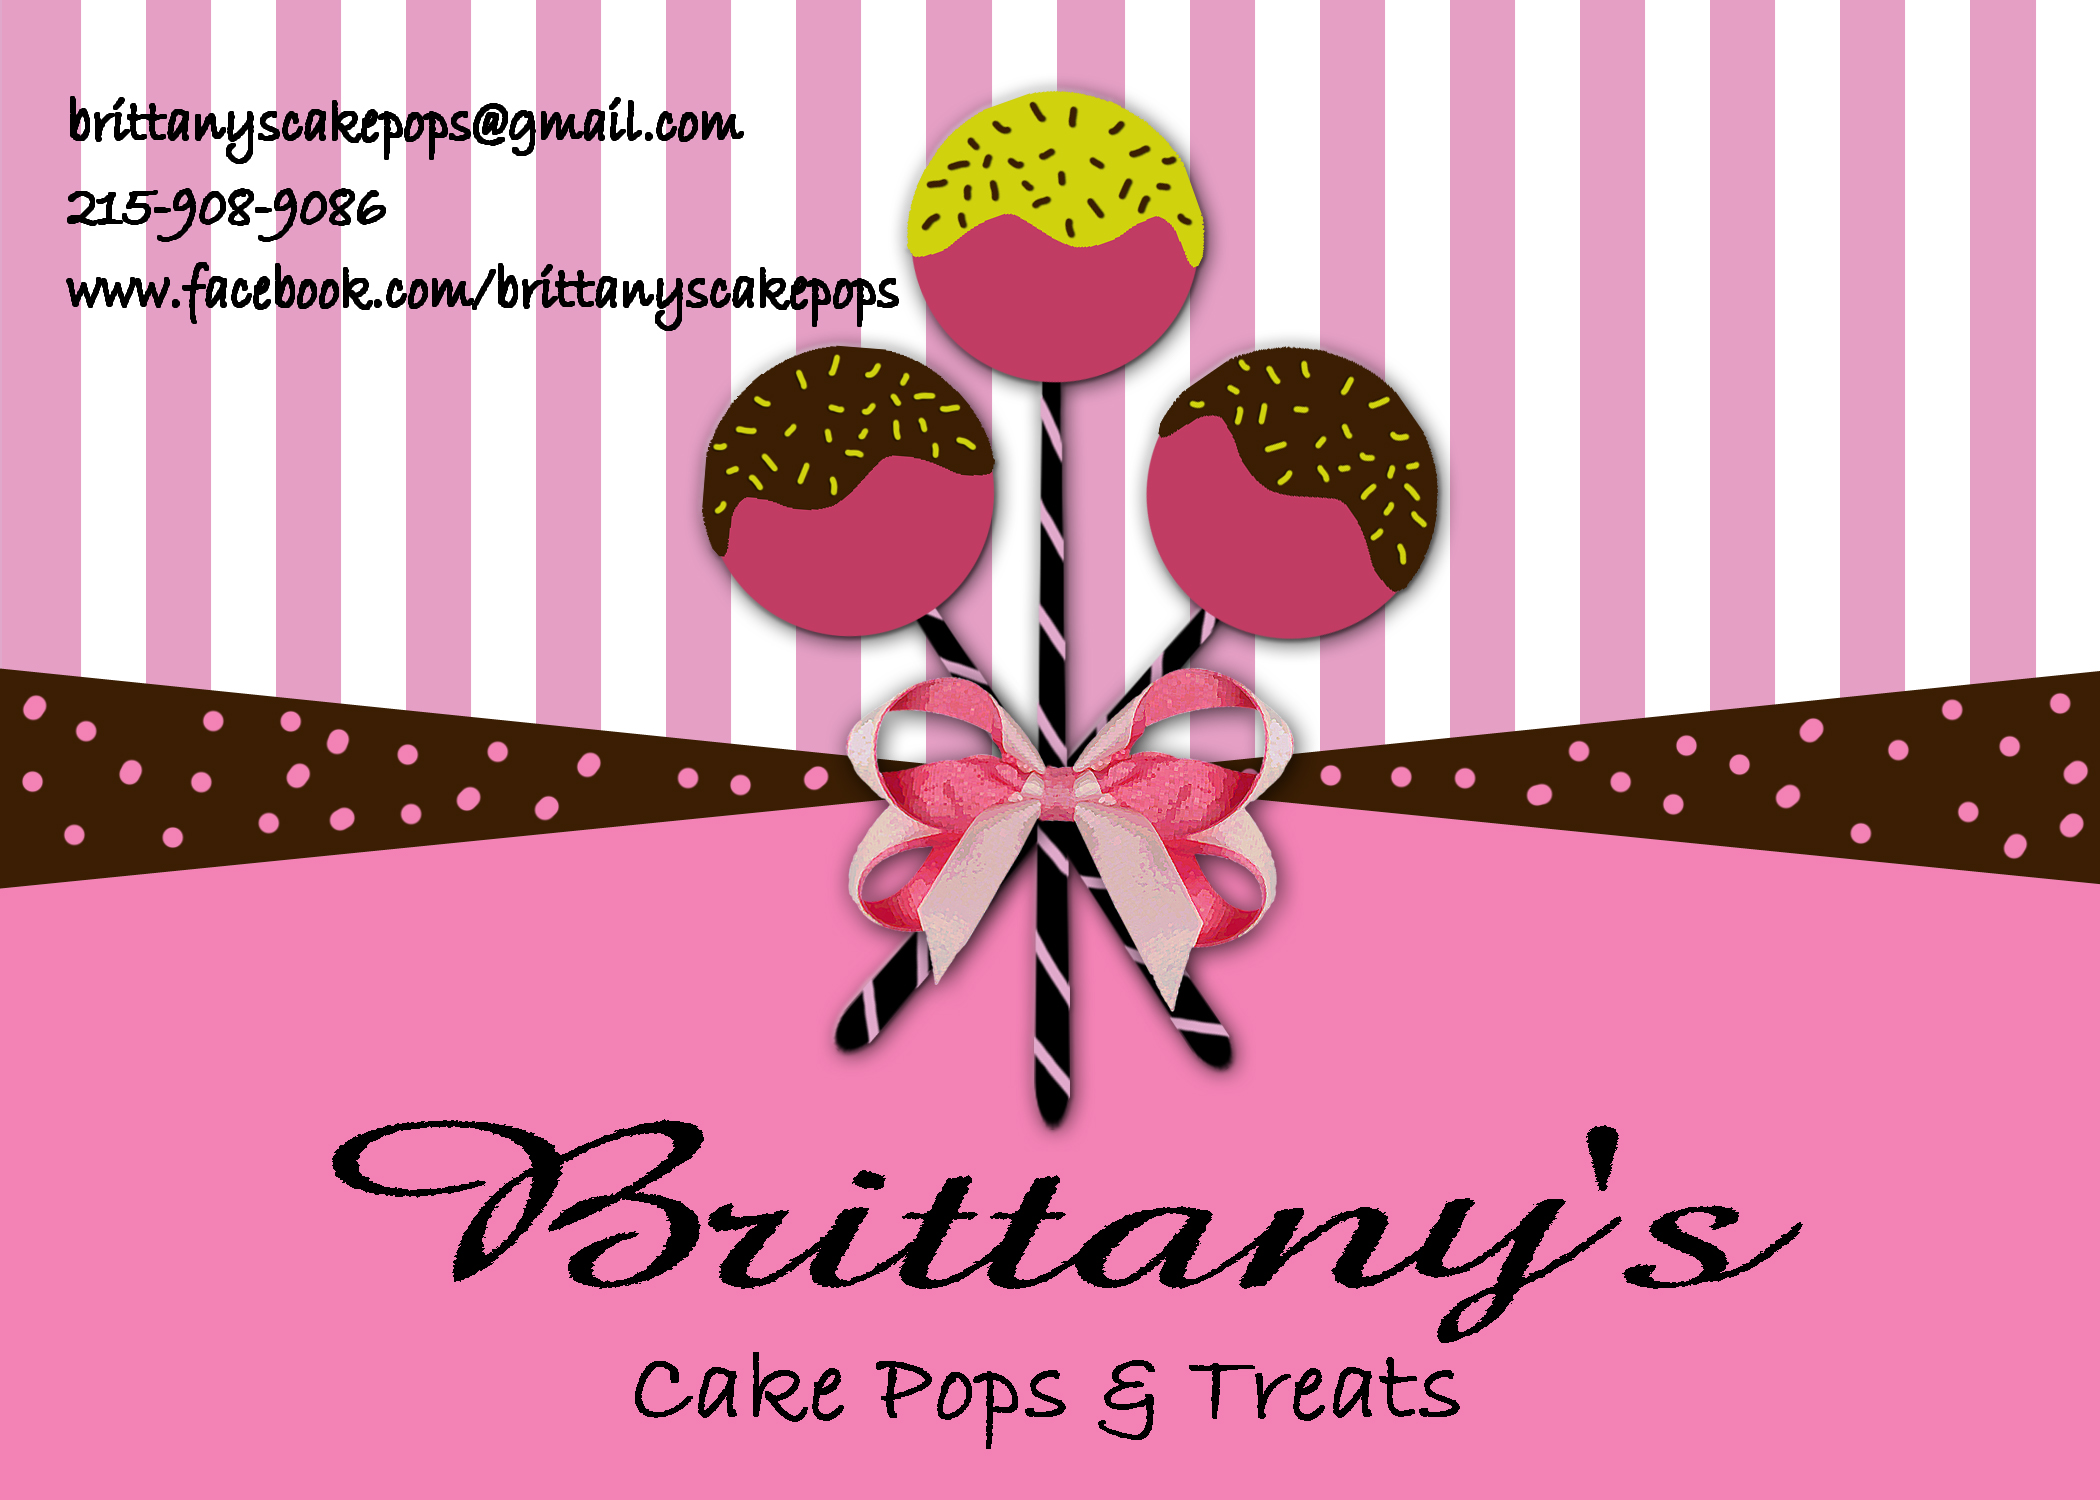 Cake Pops & Treats by Brittany